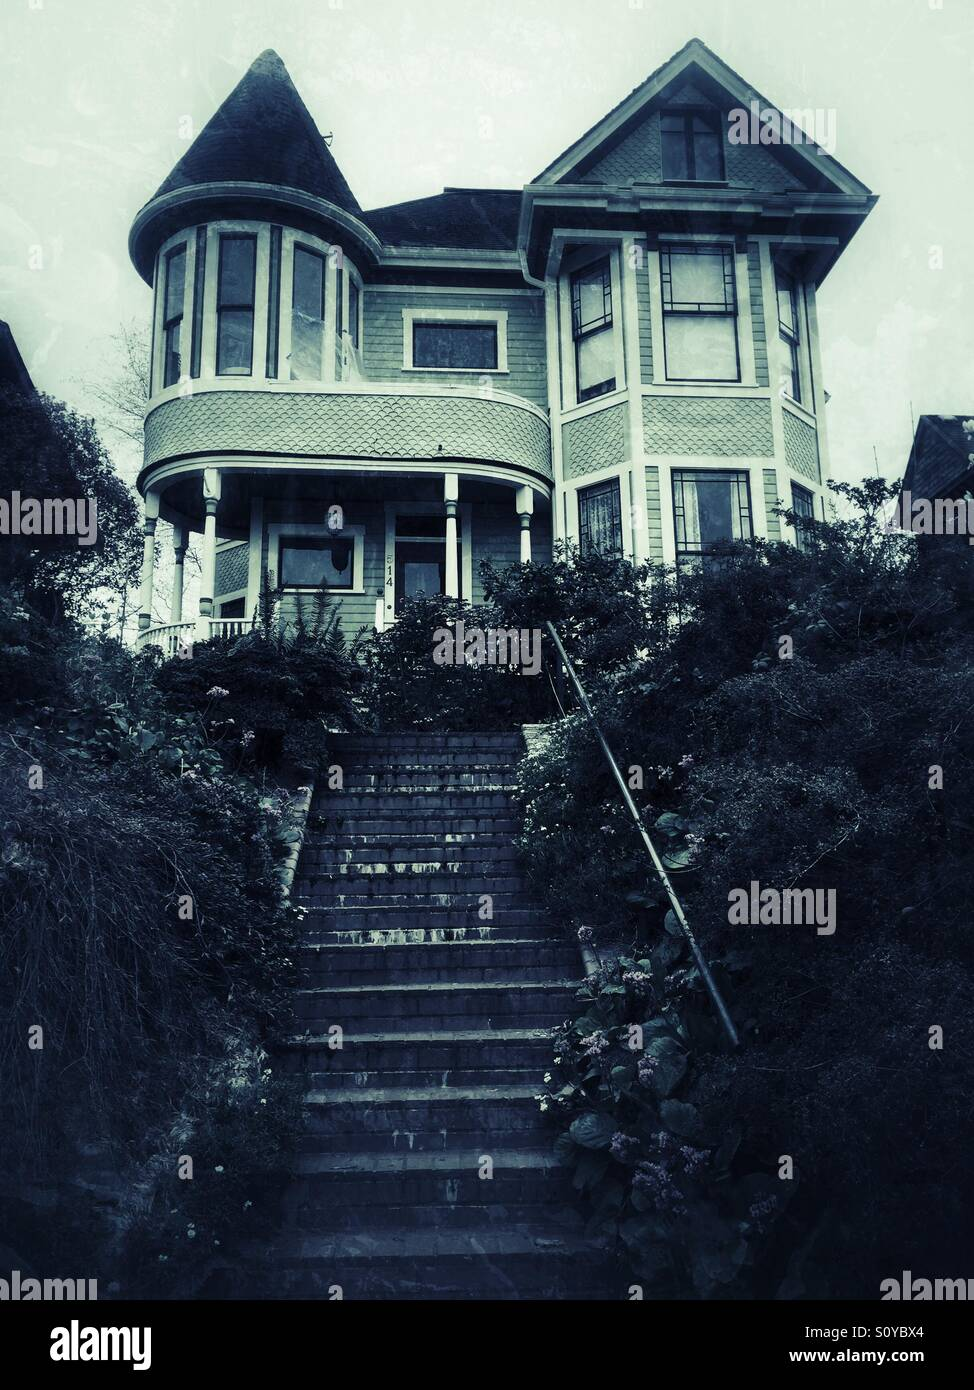 An Old Creepy Victorian House On The Hill